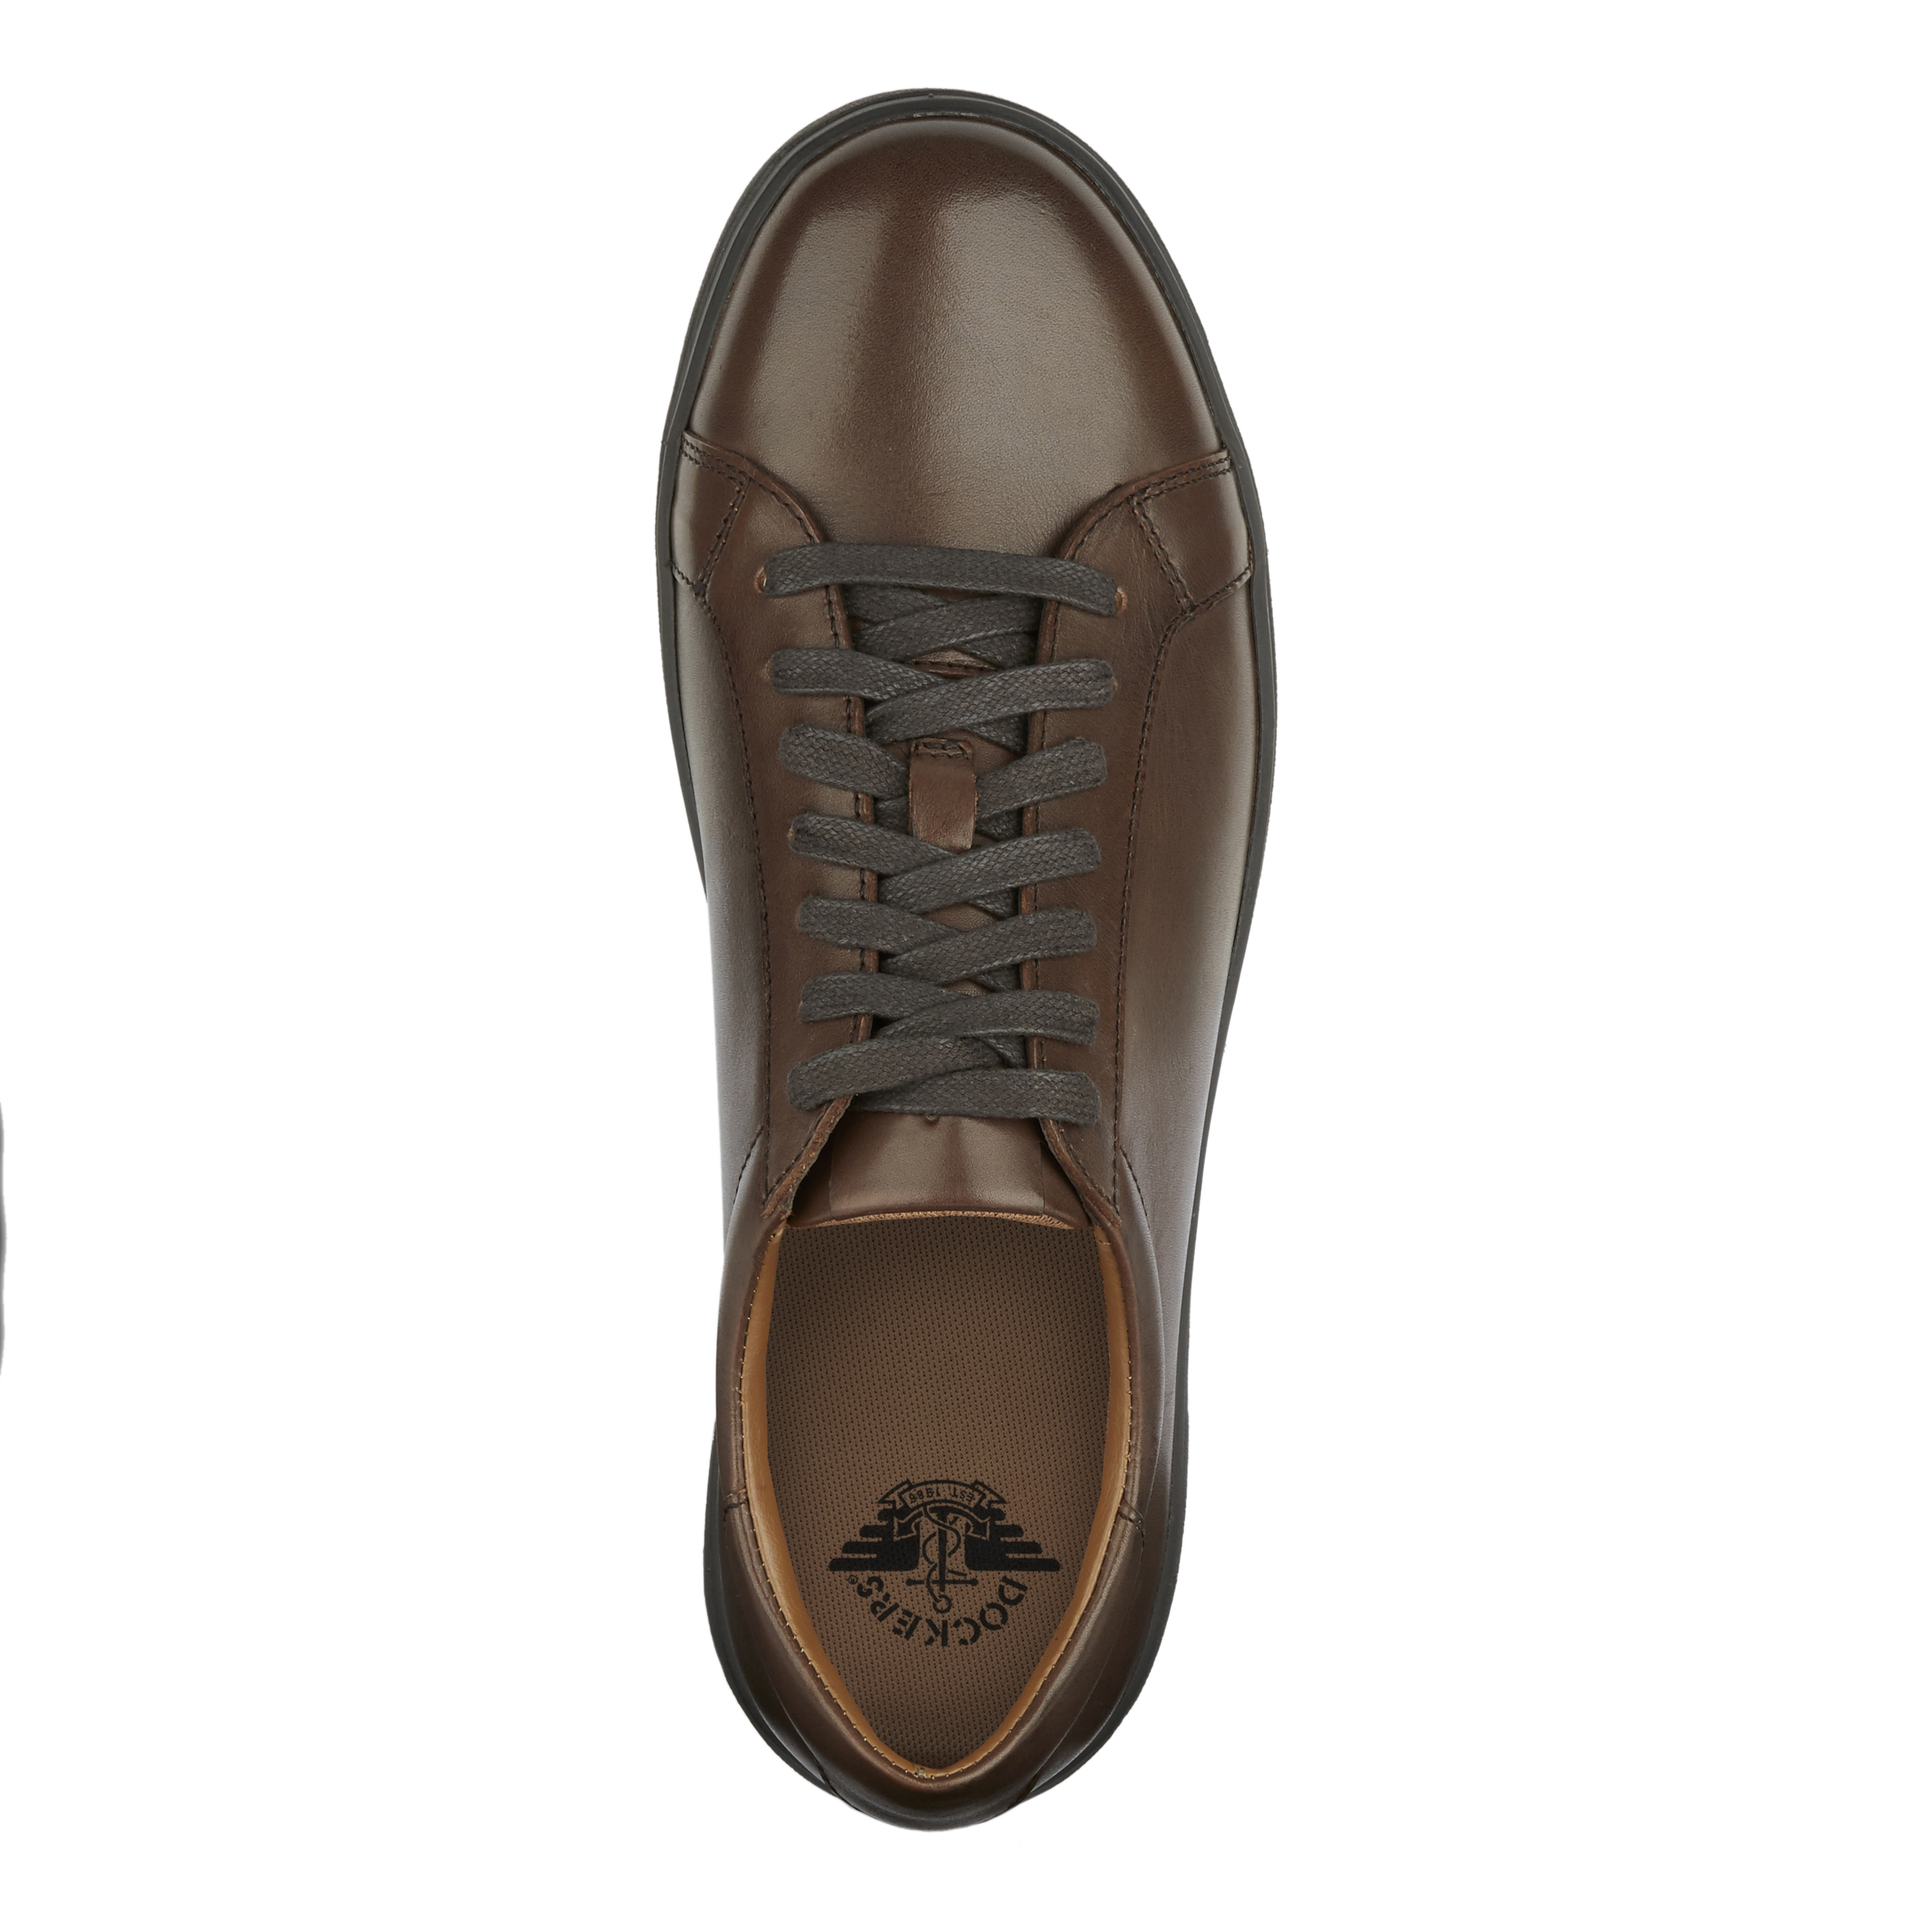 Dockers-Mens-Gilmore-Genuine-Leather-Casual-Fashion-Lace-up-Sneaker-Shoe thumbnail 14